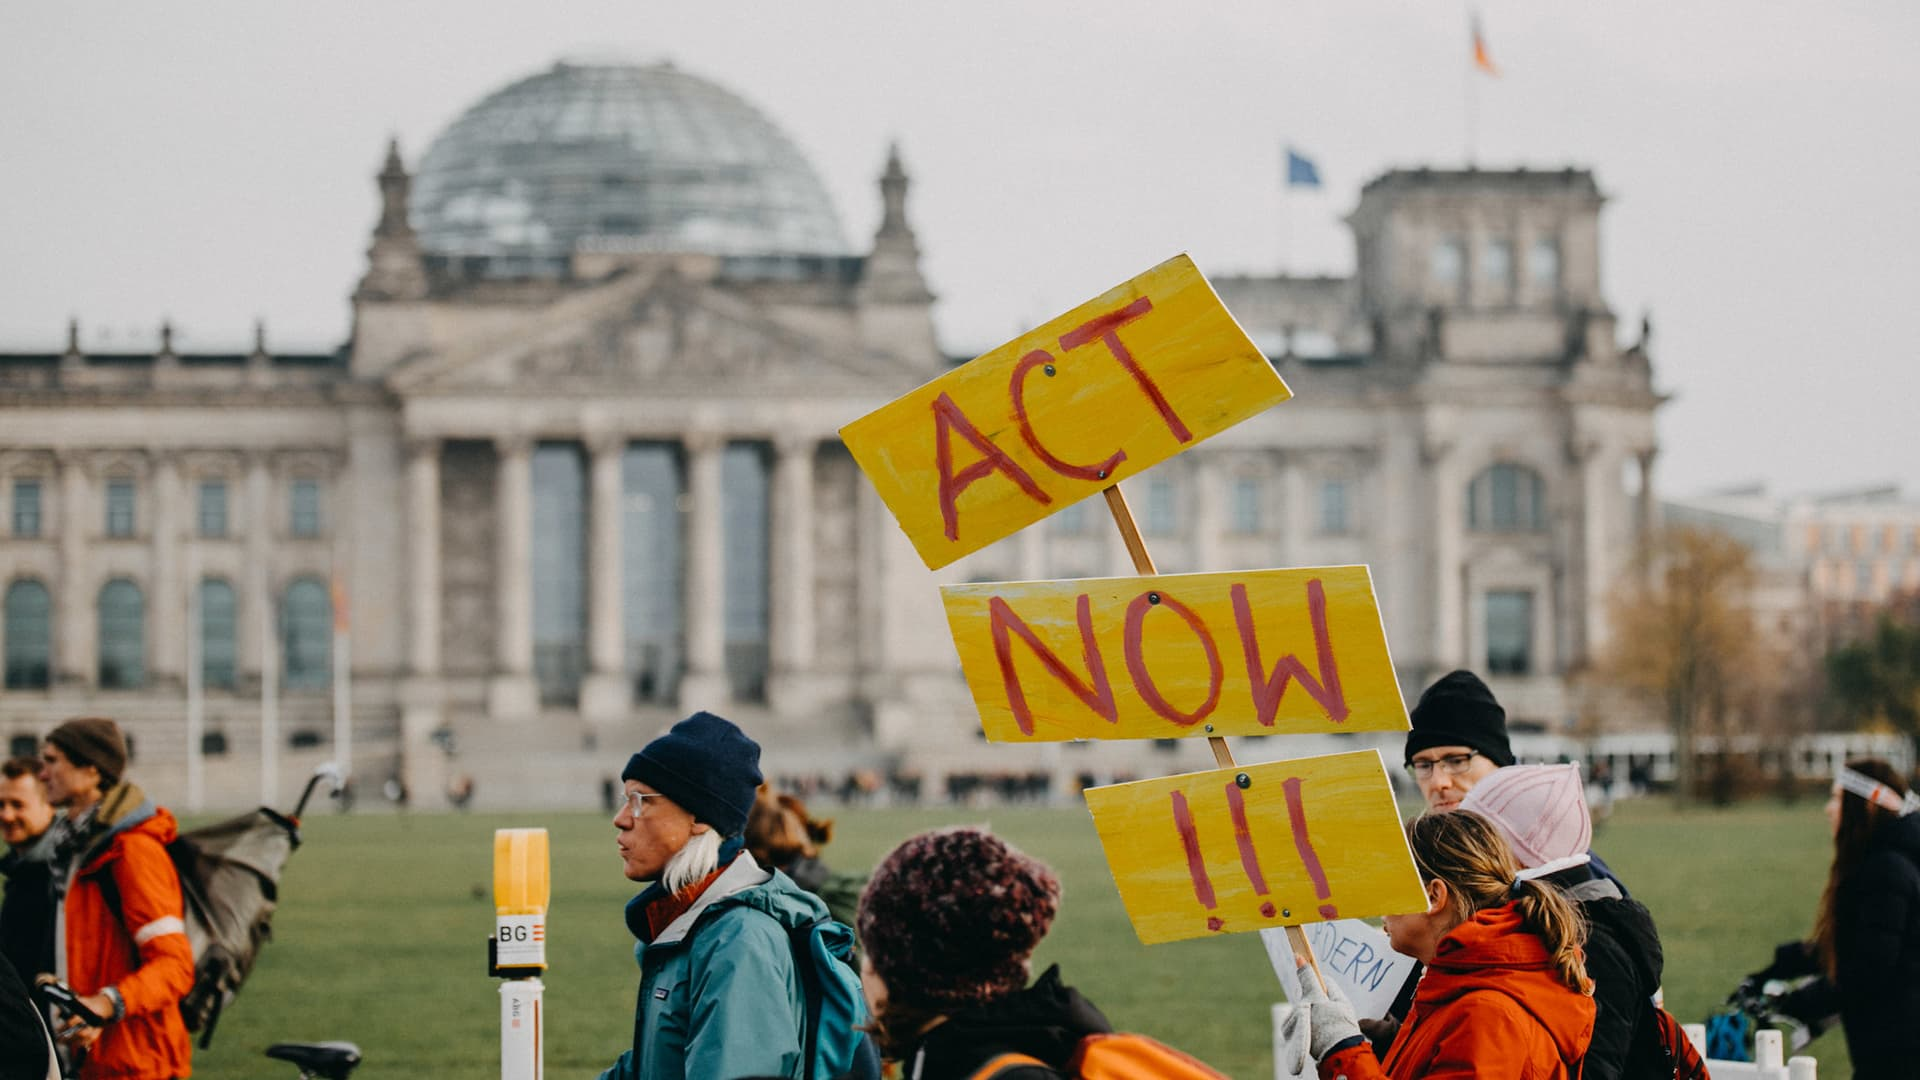 Act now Demo Fridays for Future Klimastreik